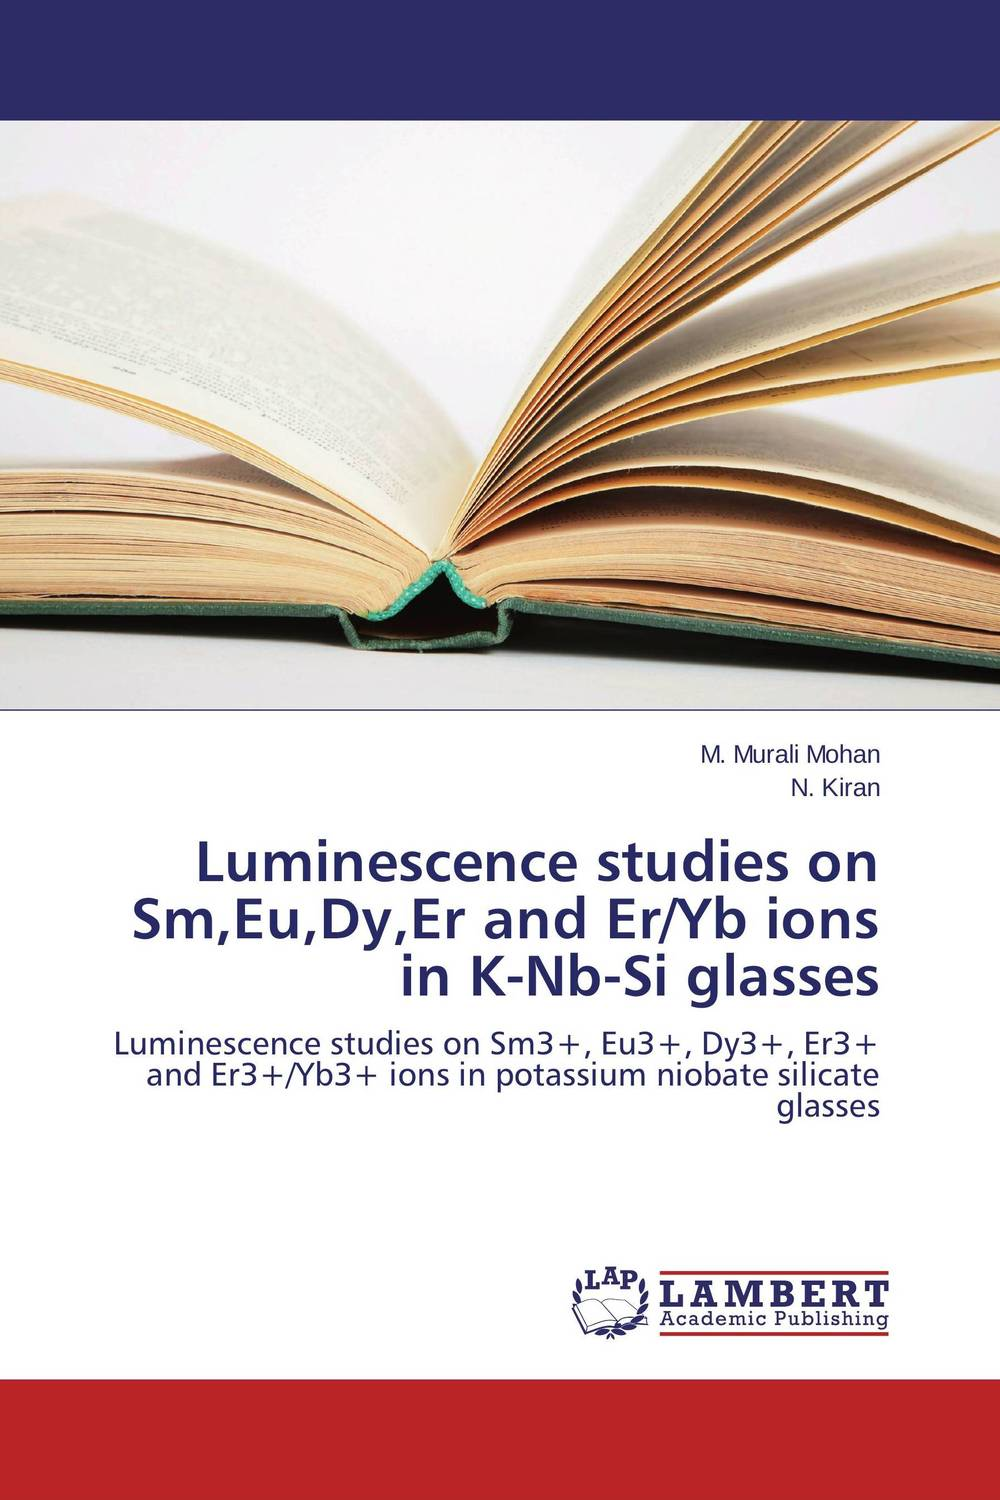 Luminescence studies on Sm,Eu,Dy,Er and Er/Yb ions in K-Nb-Si glasses аккумулятор yoobao yb 6014 10400mah green